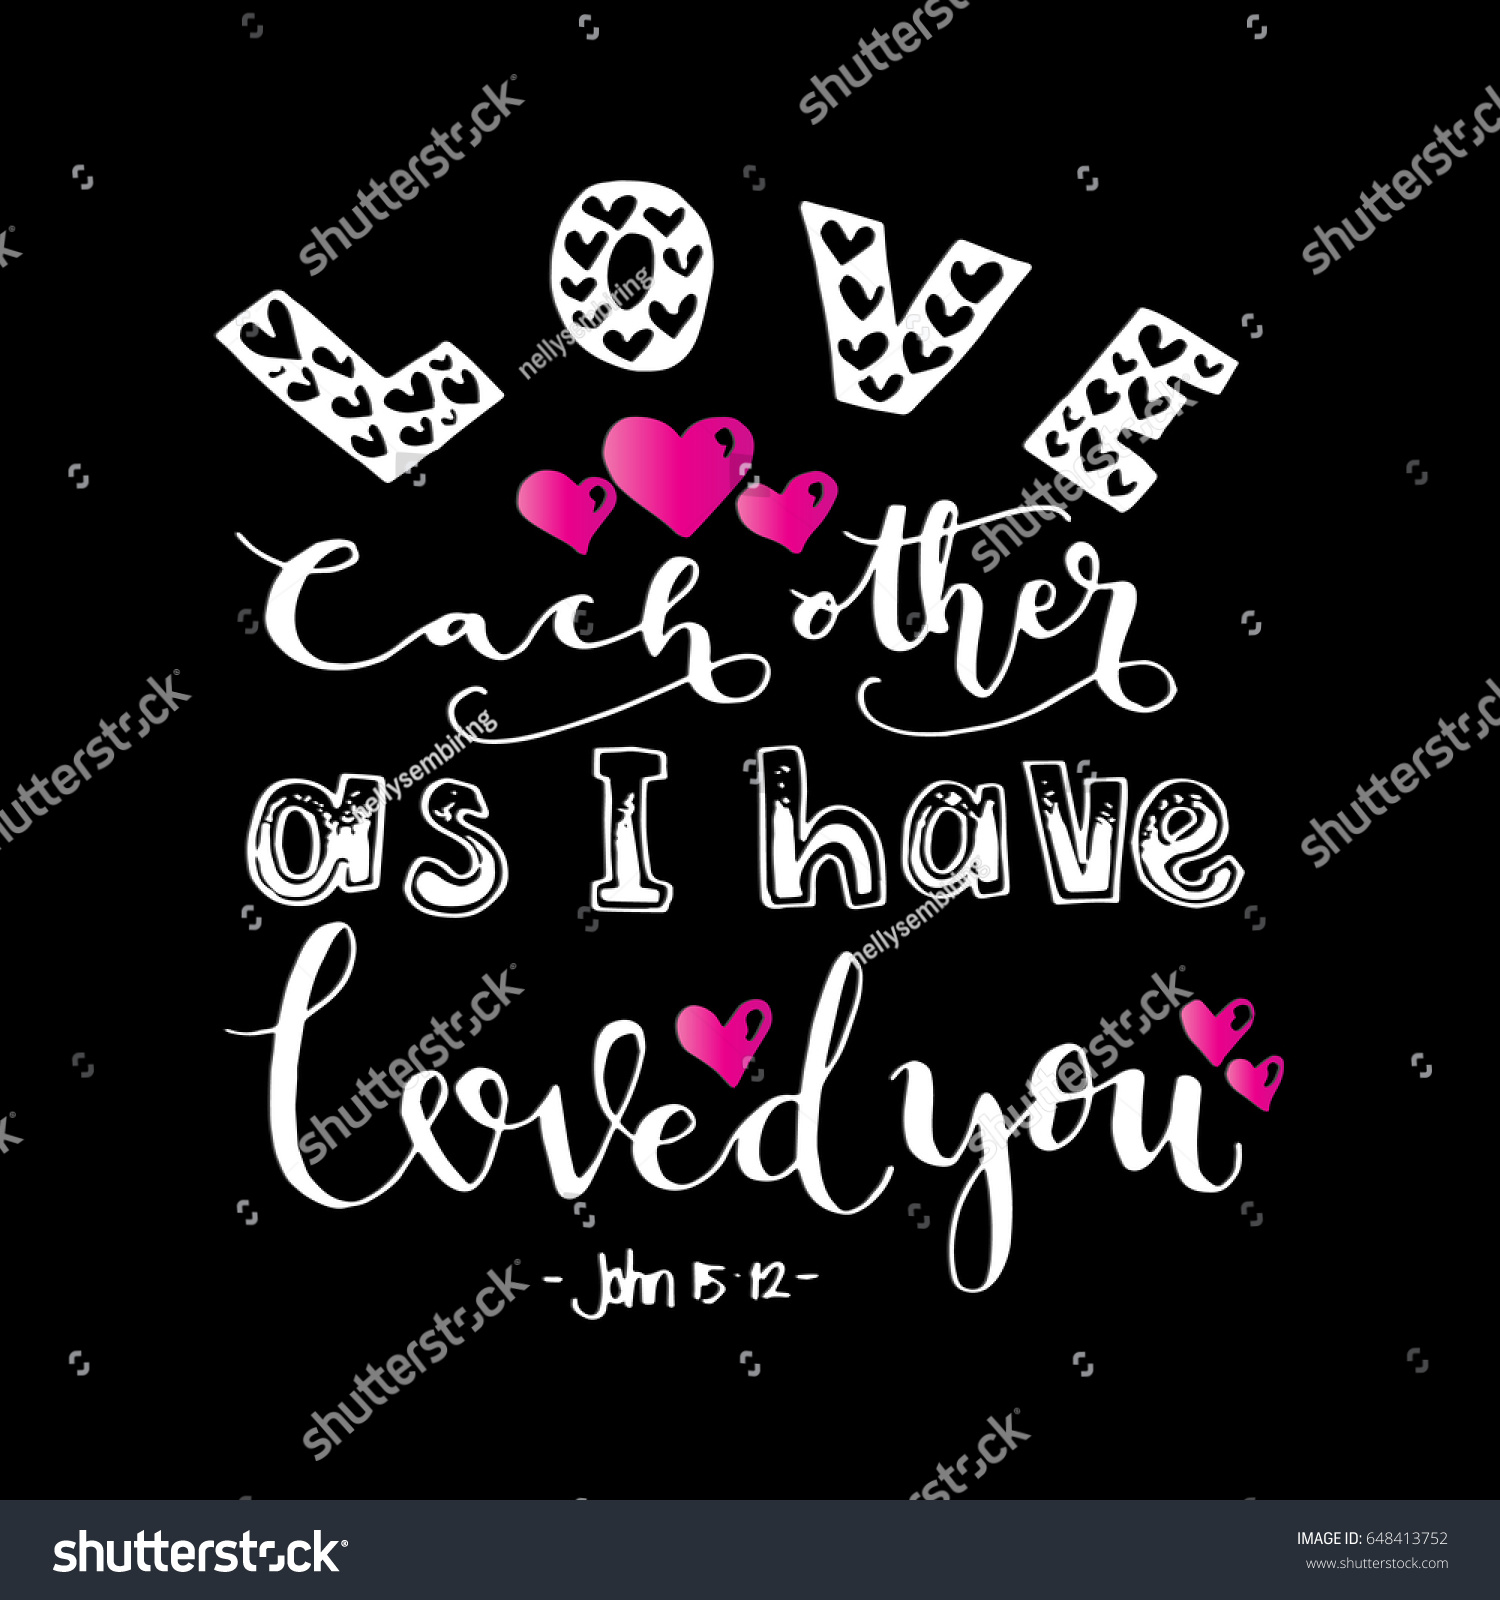 Love Each Other As I Have Loved You: Love Each Other Have Loved You Stock Vector 648413752